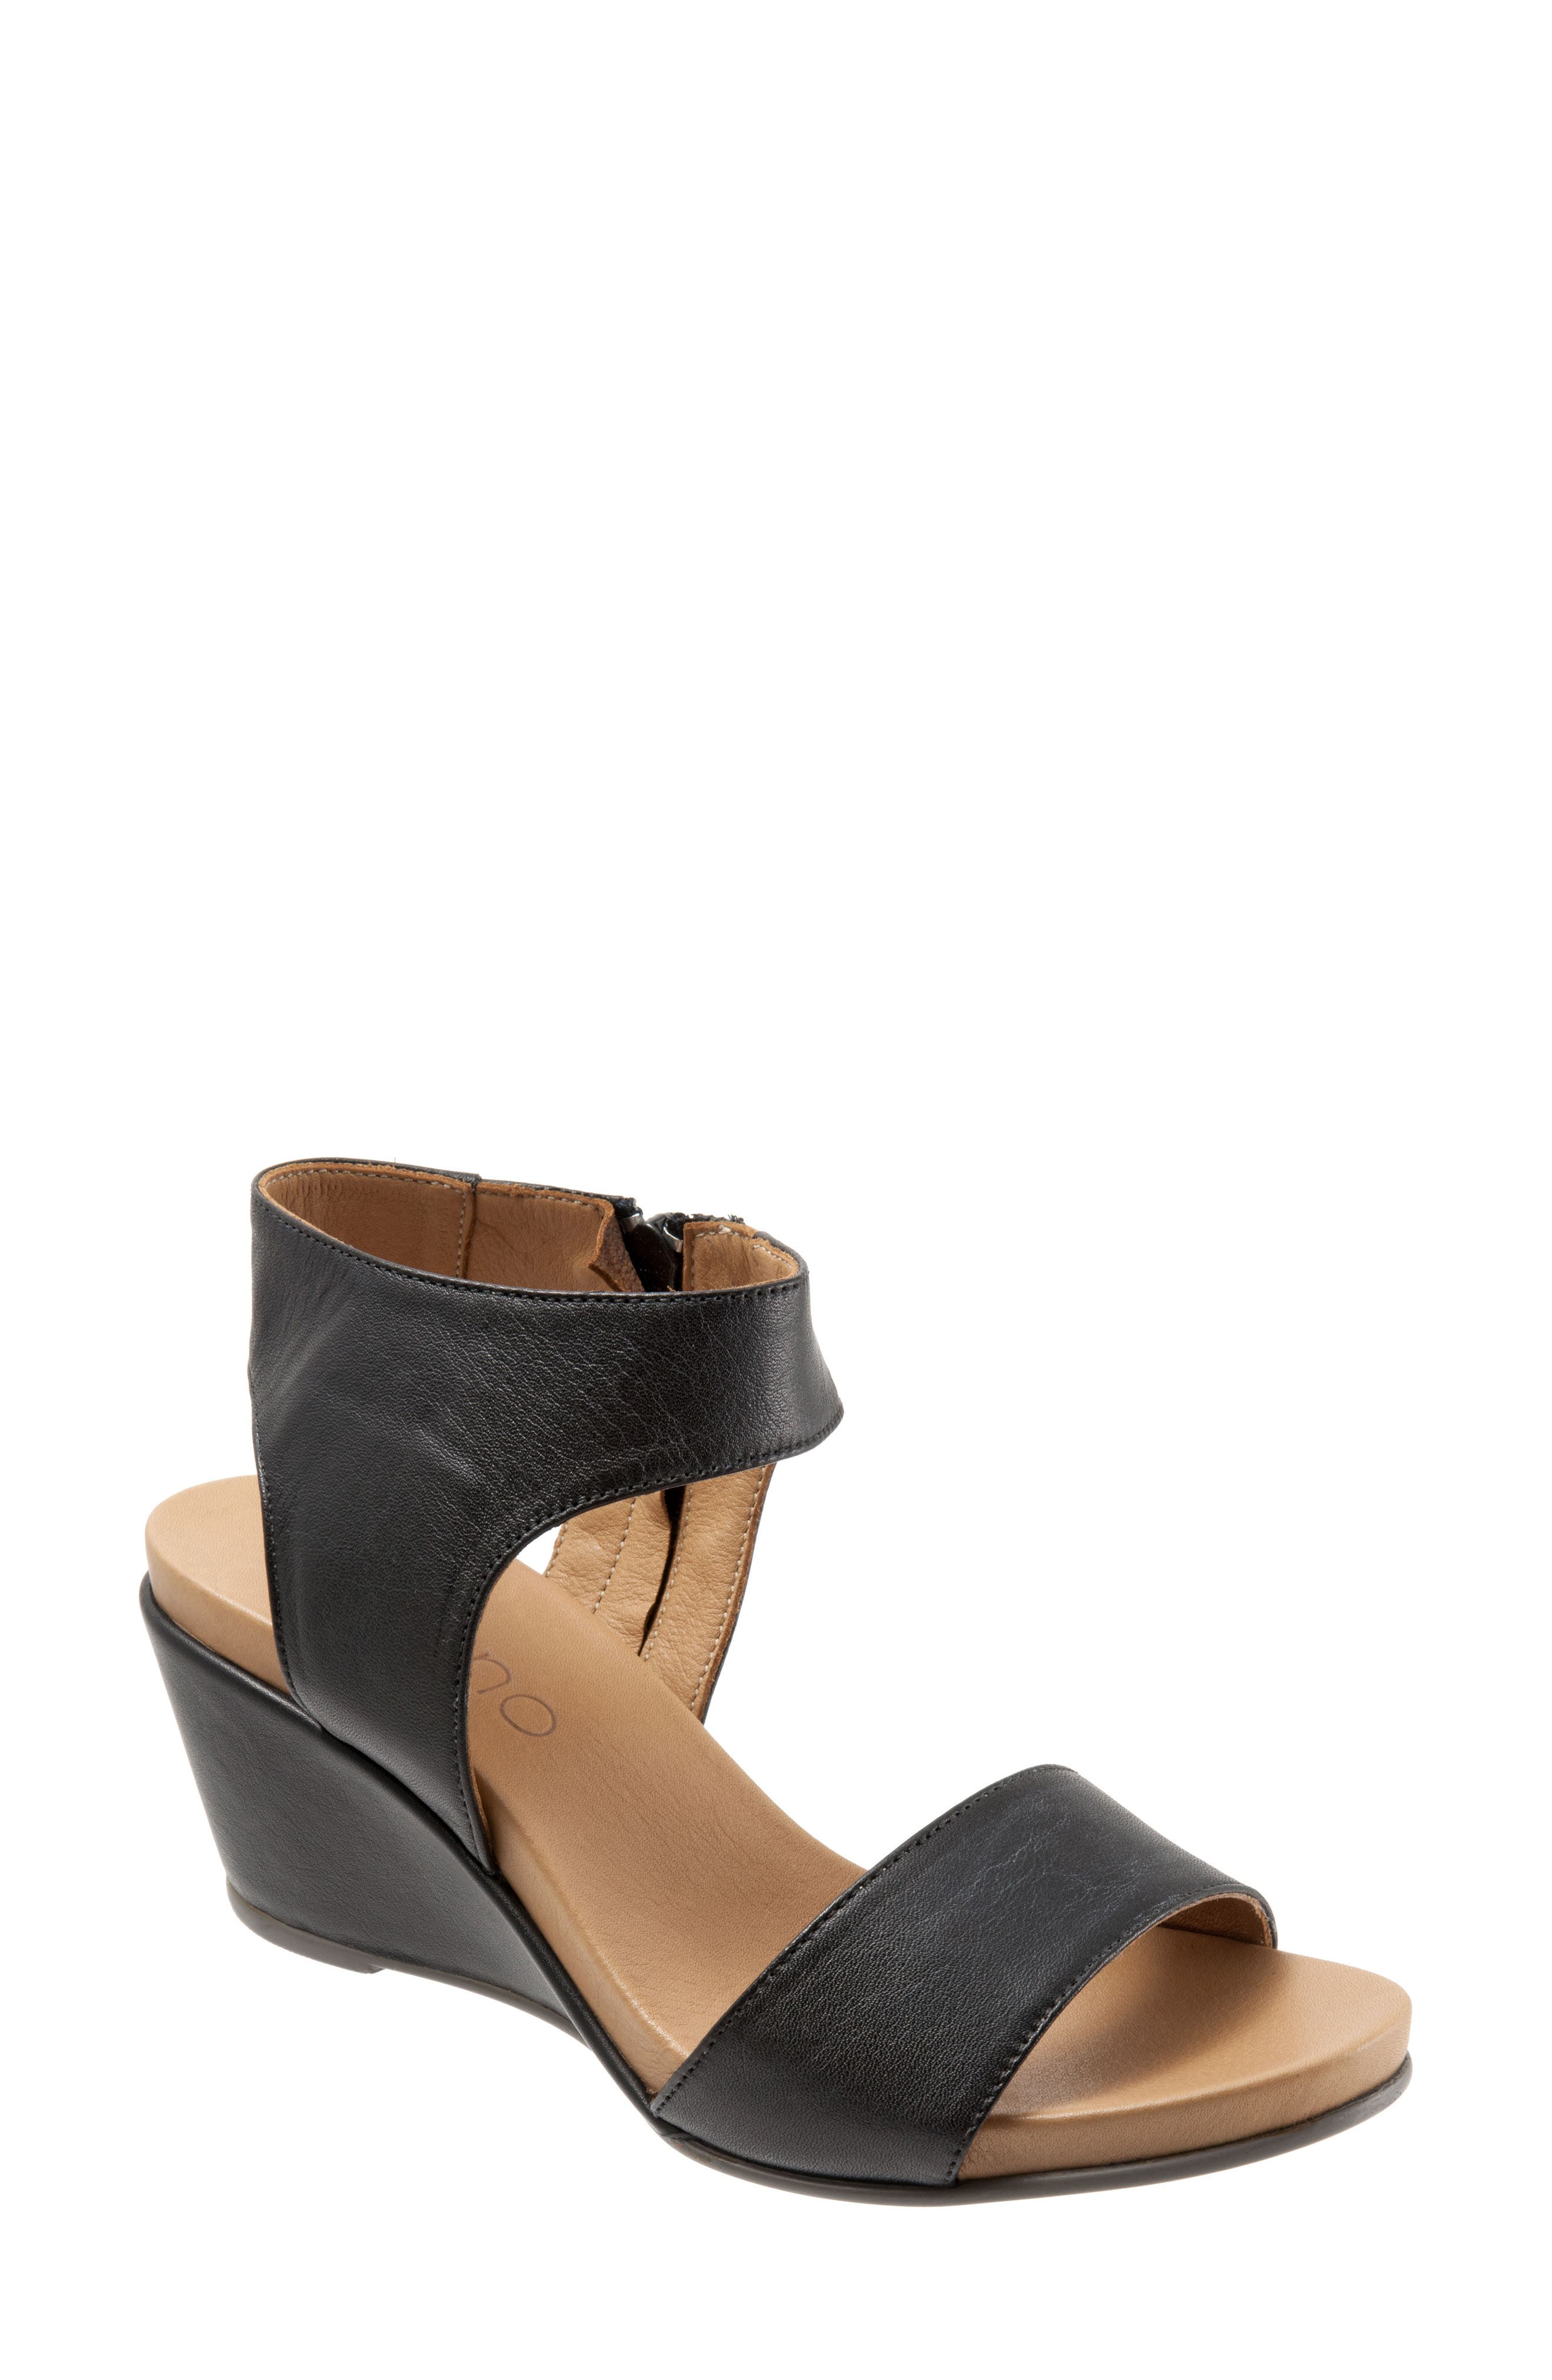 Ida Wedge Sandal,                             Main thumbnail 1, color,                             Black Leather